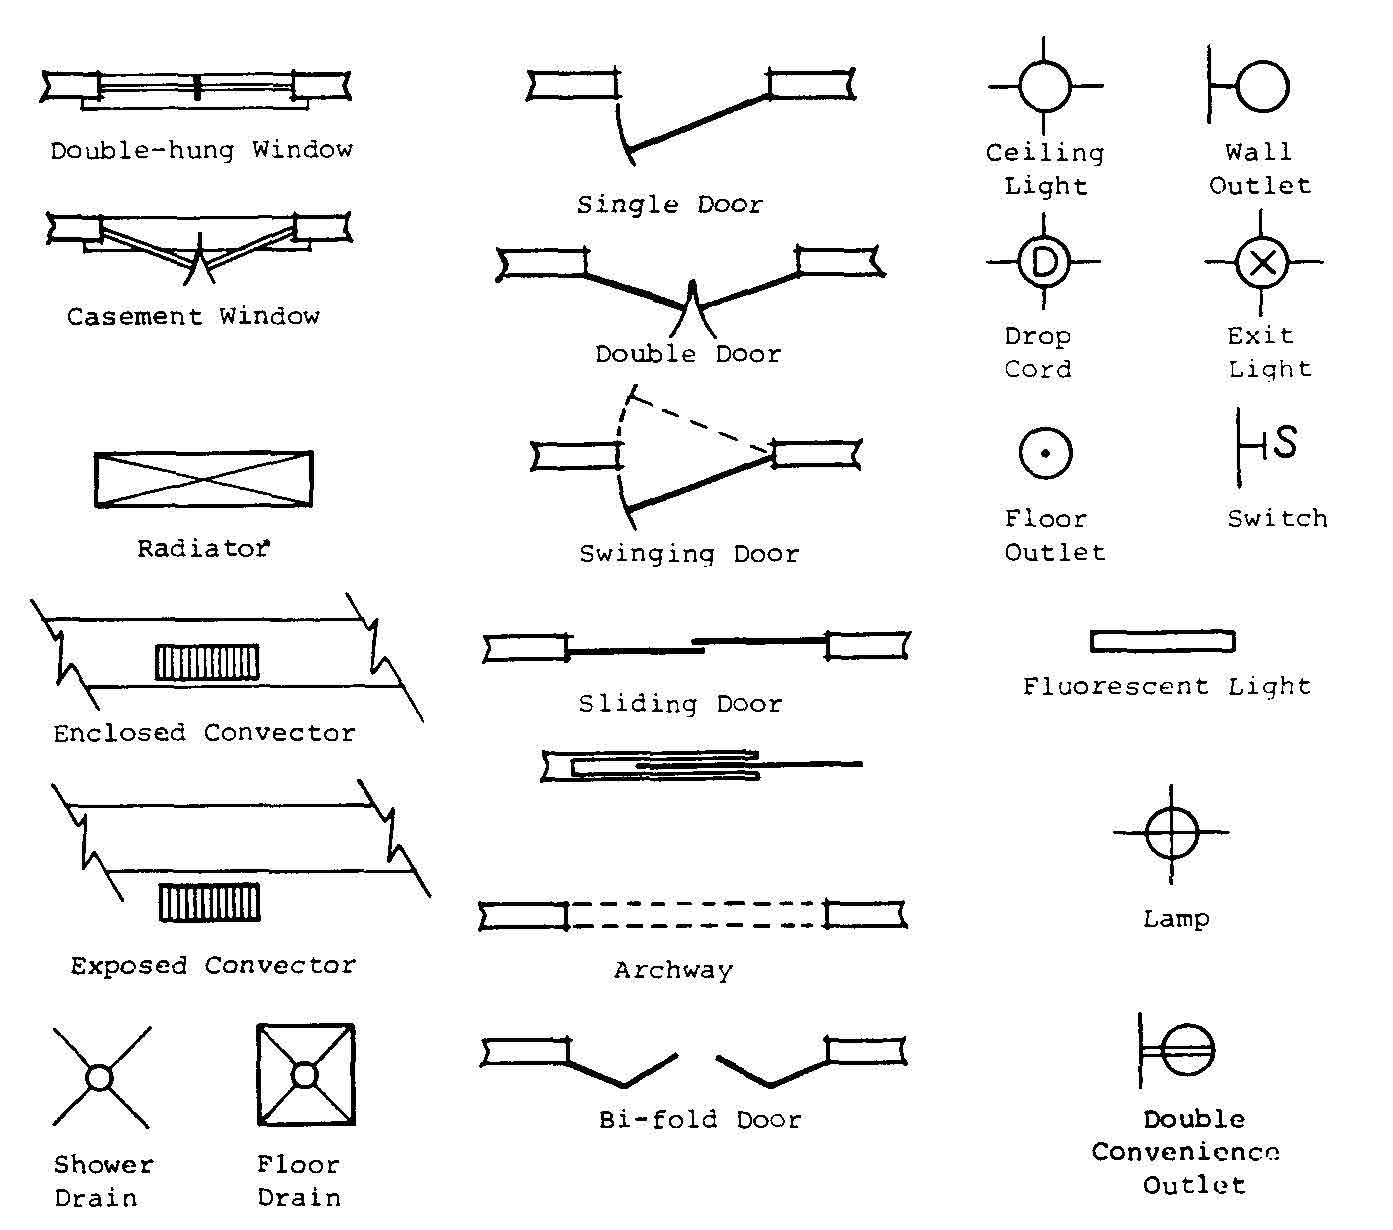 Floor plan symbols for doors, windows, and electrical